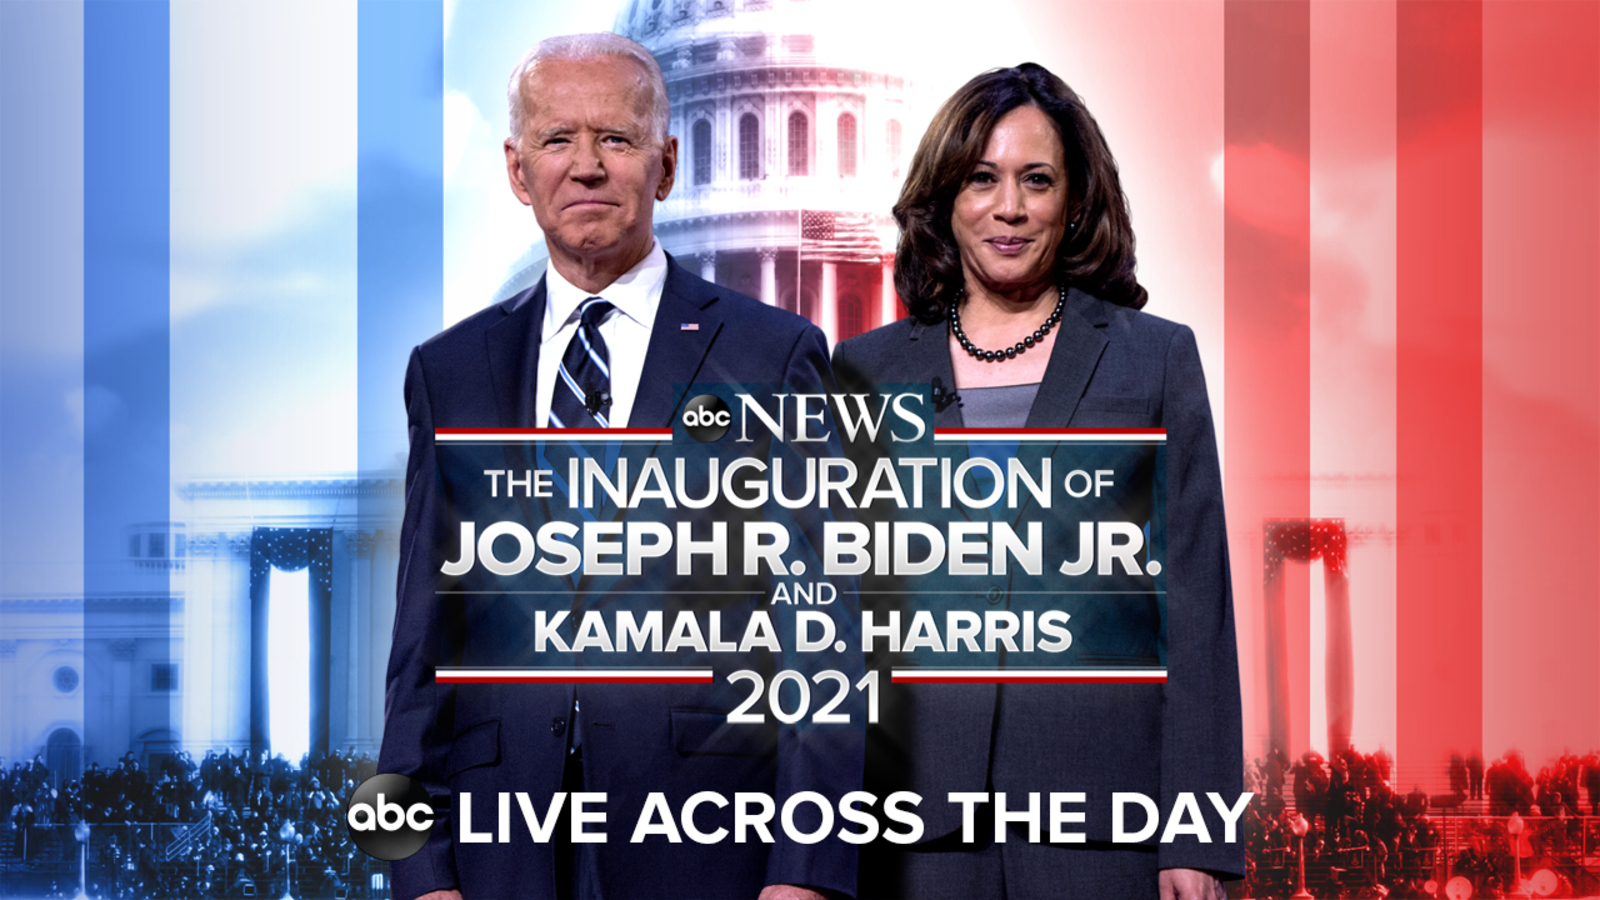 President-elect Biden and VP-elect Harris arrive at Capitol ahead of inauguration: WATCH IT LIVE